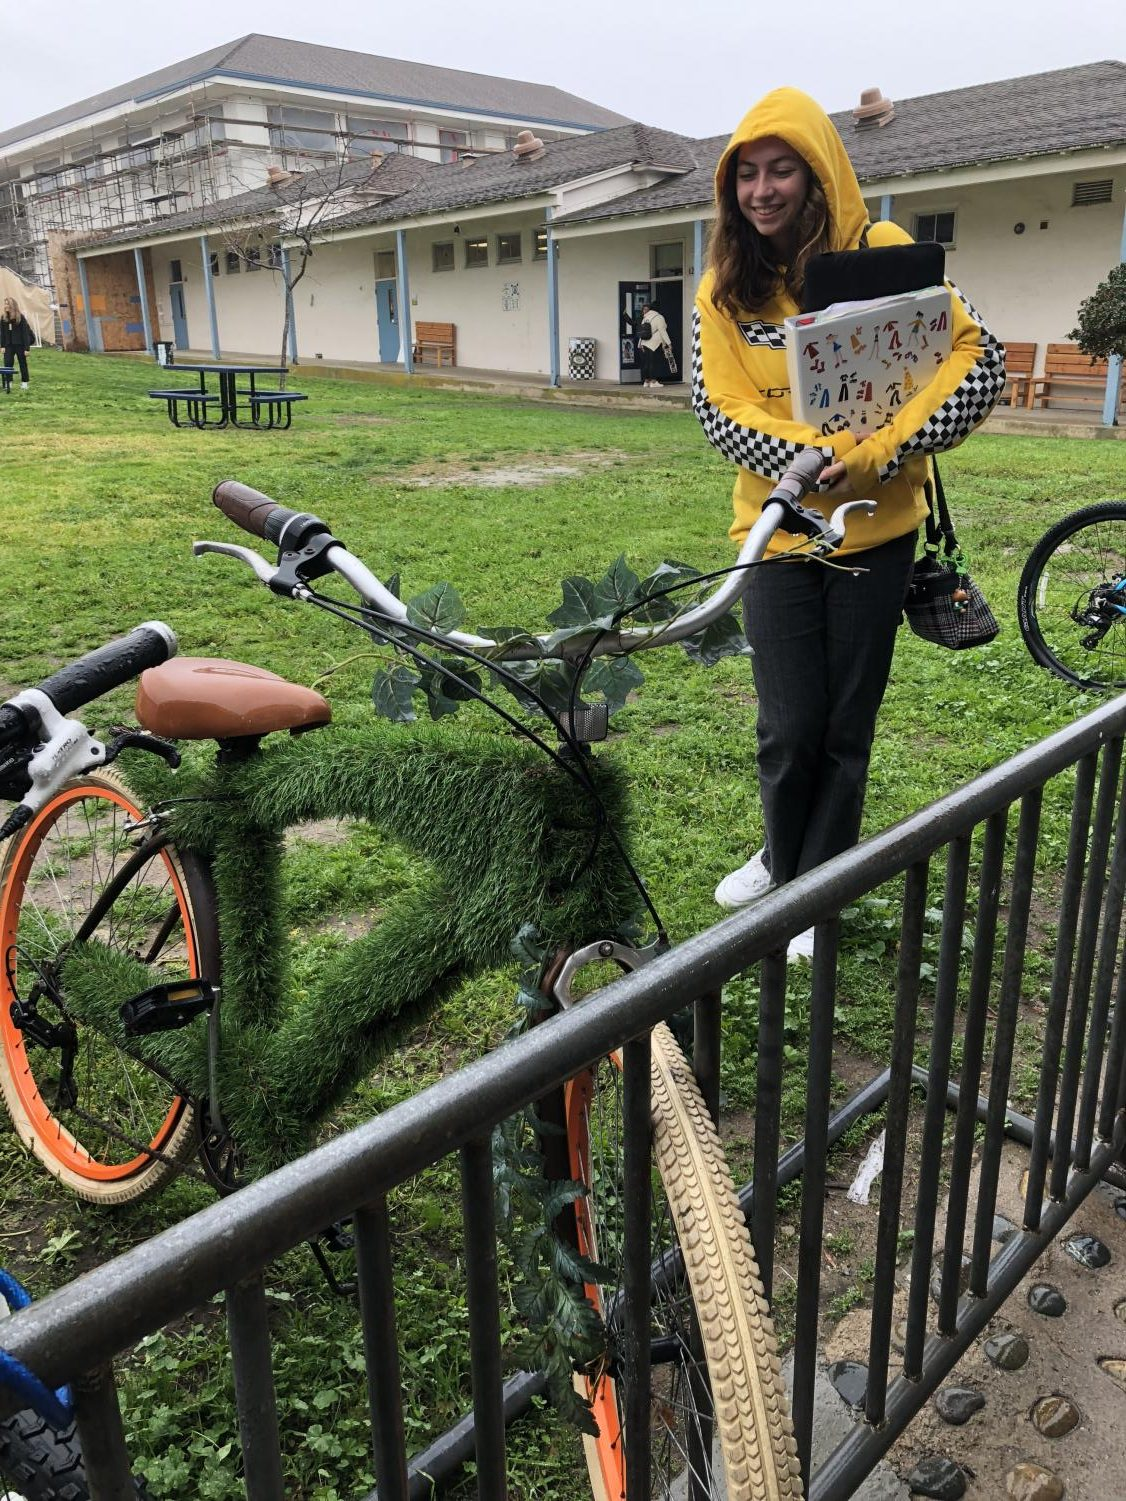 Sophomore Shayna Dumont admires the bike she happened to stumble upon yesterday morning.